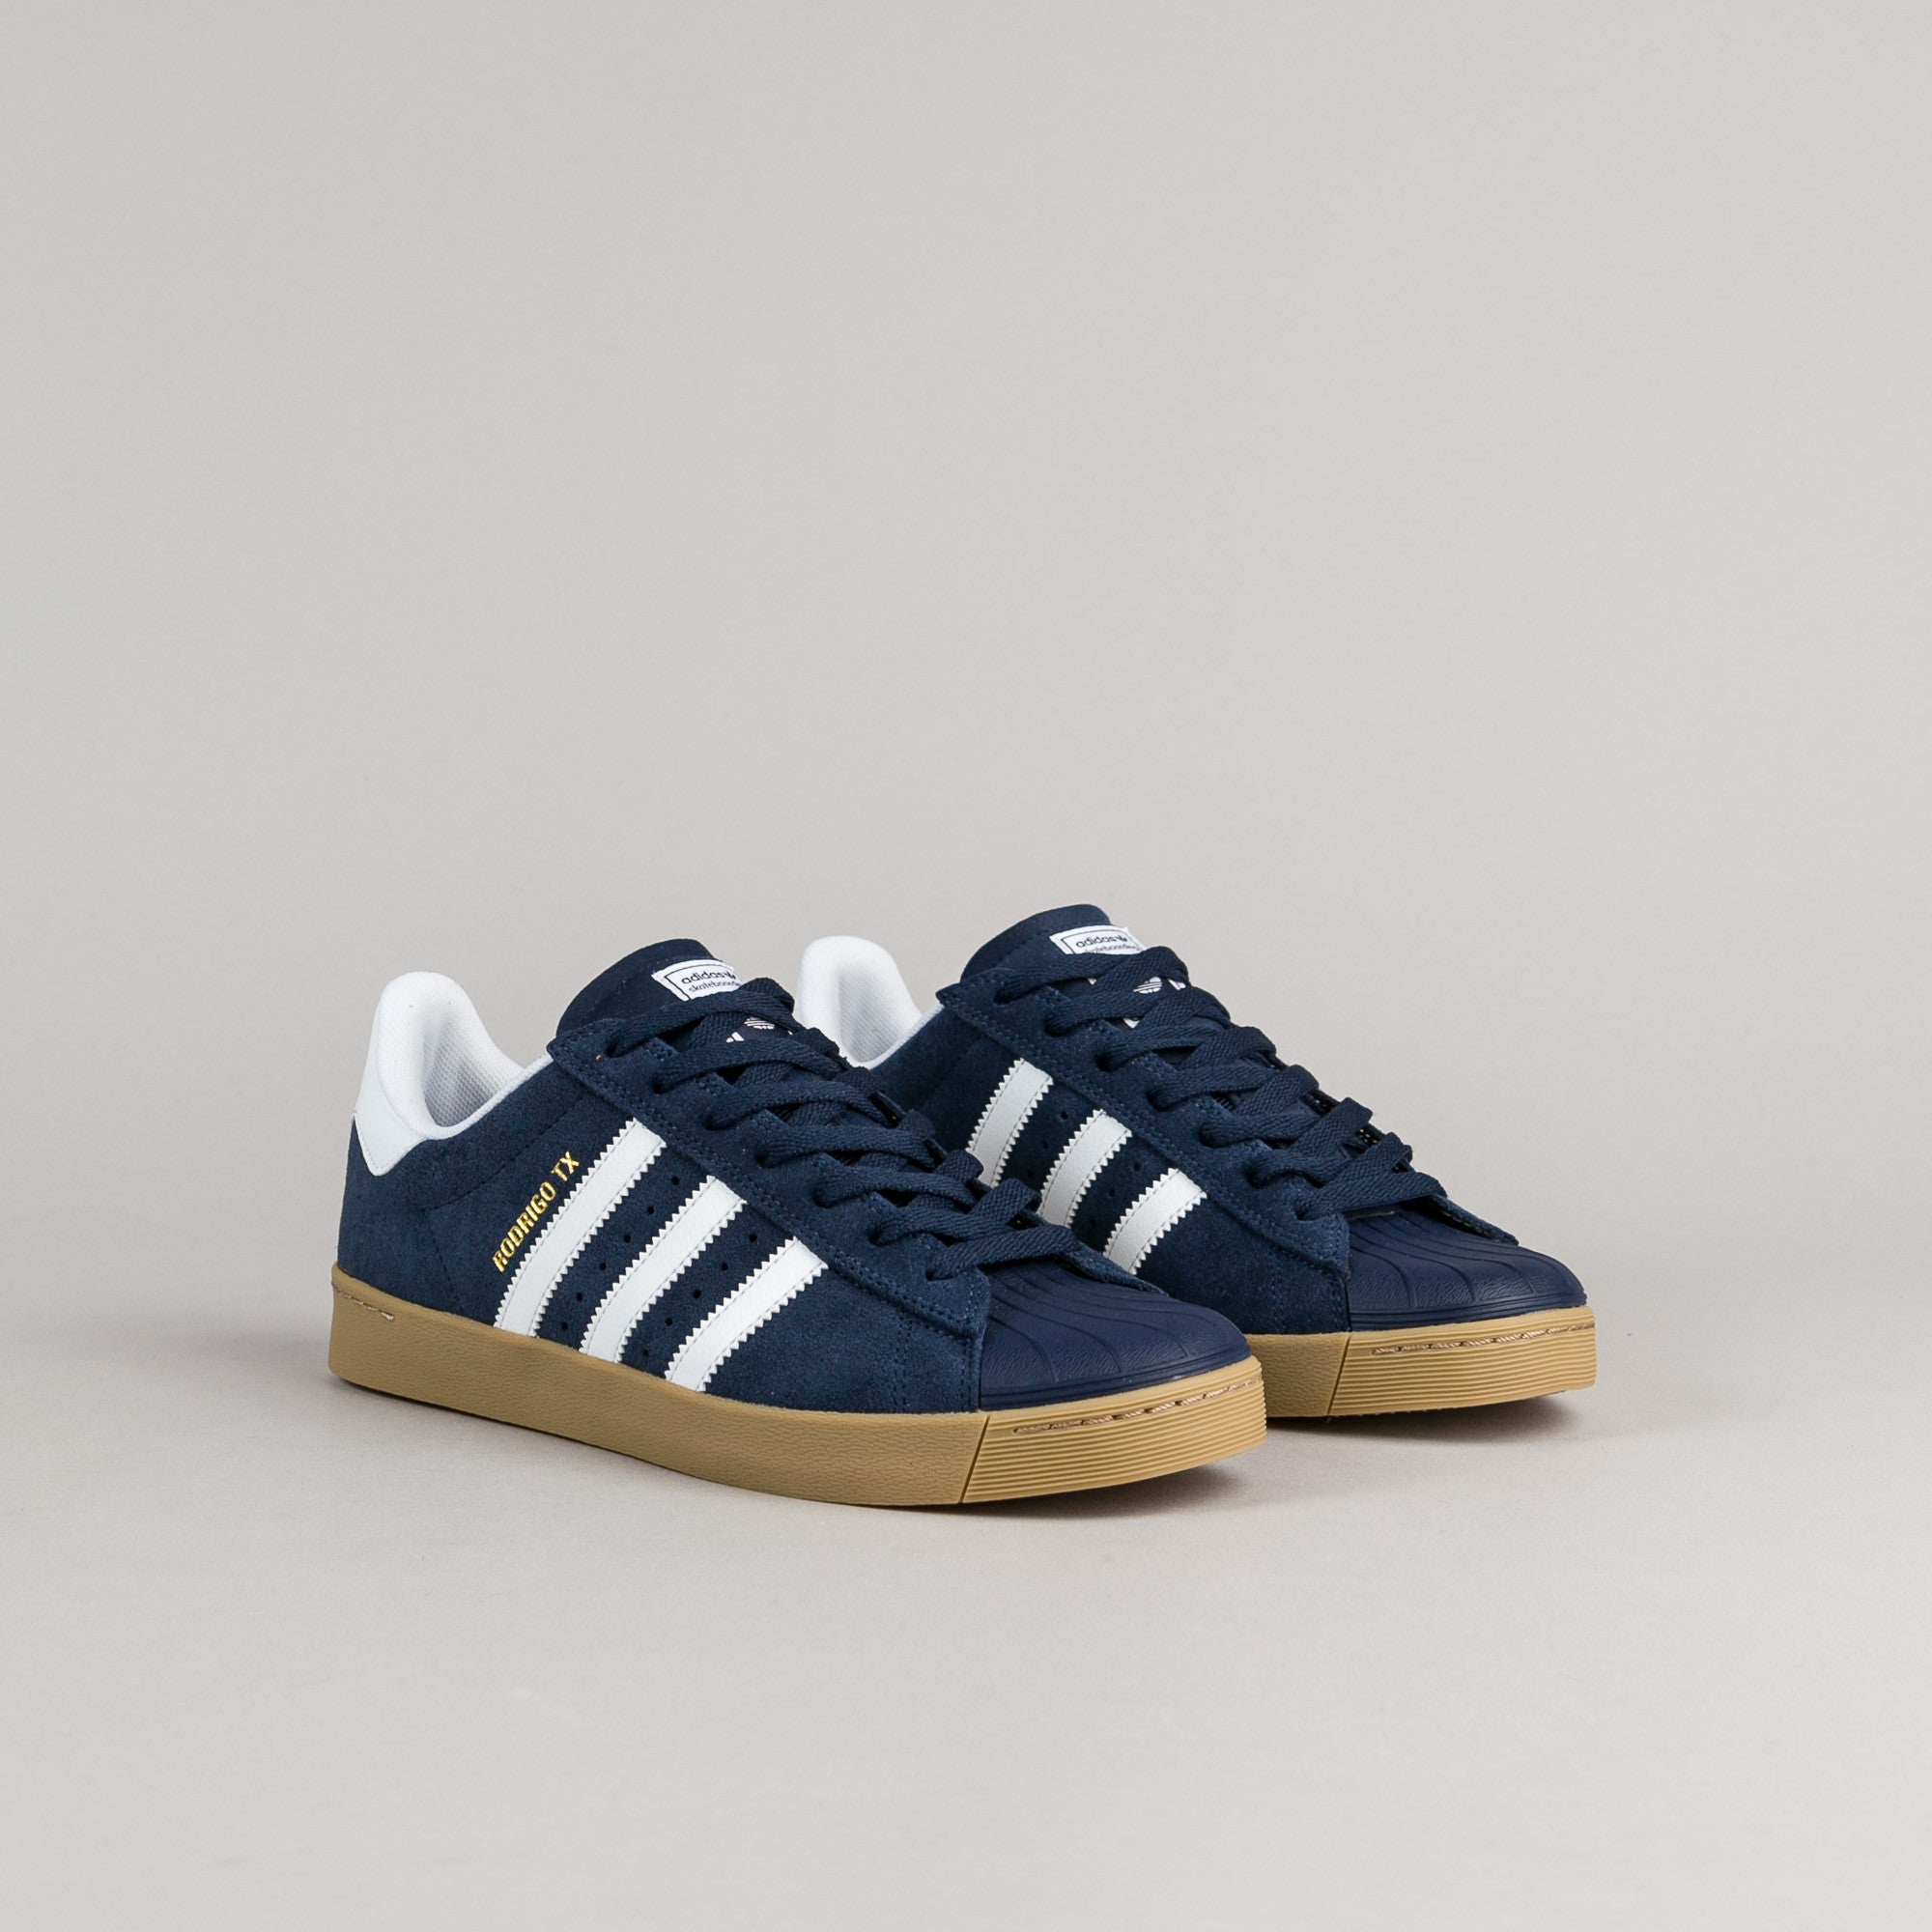 Cheap Adidas Superstar Vulc ADV Pastel Blue Shoes at Zumiez: PDP